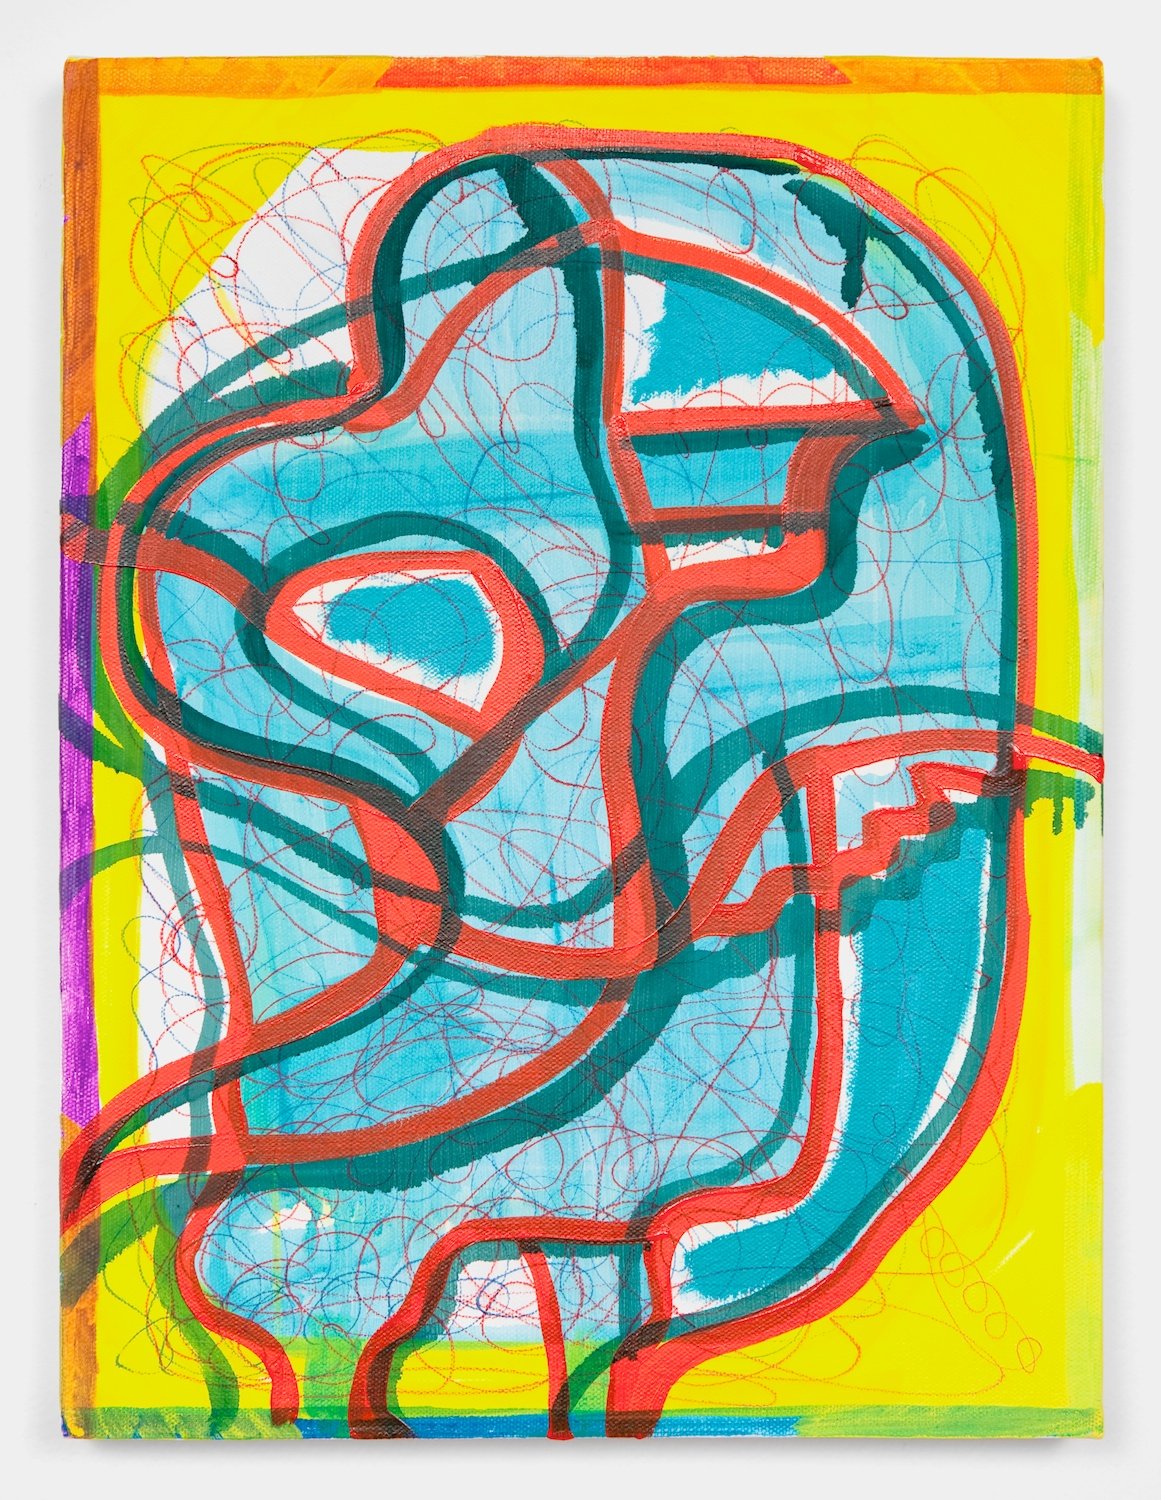 Joanne Greenbaum  Untitled  2011 Oil, acrylic and mixed media on linen 16h x 12w in JG057